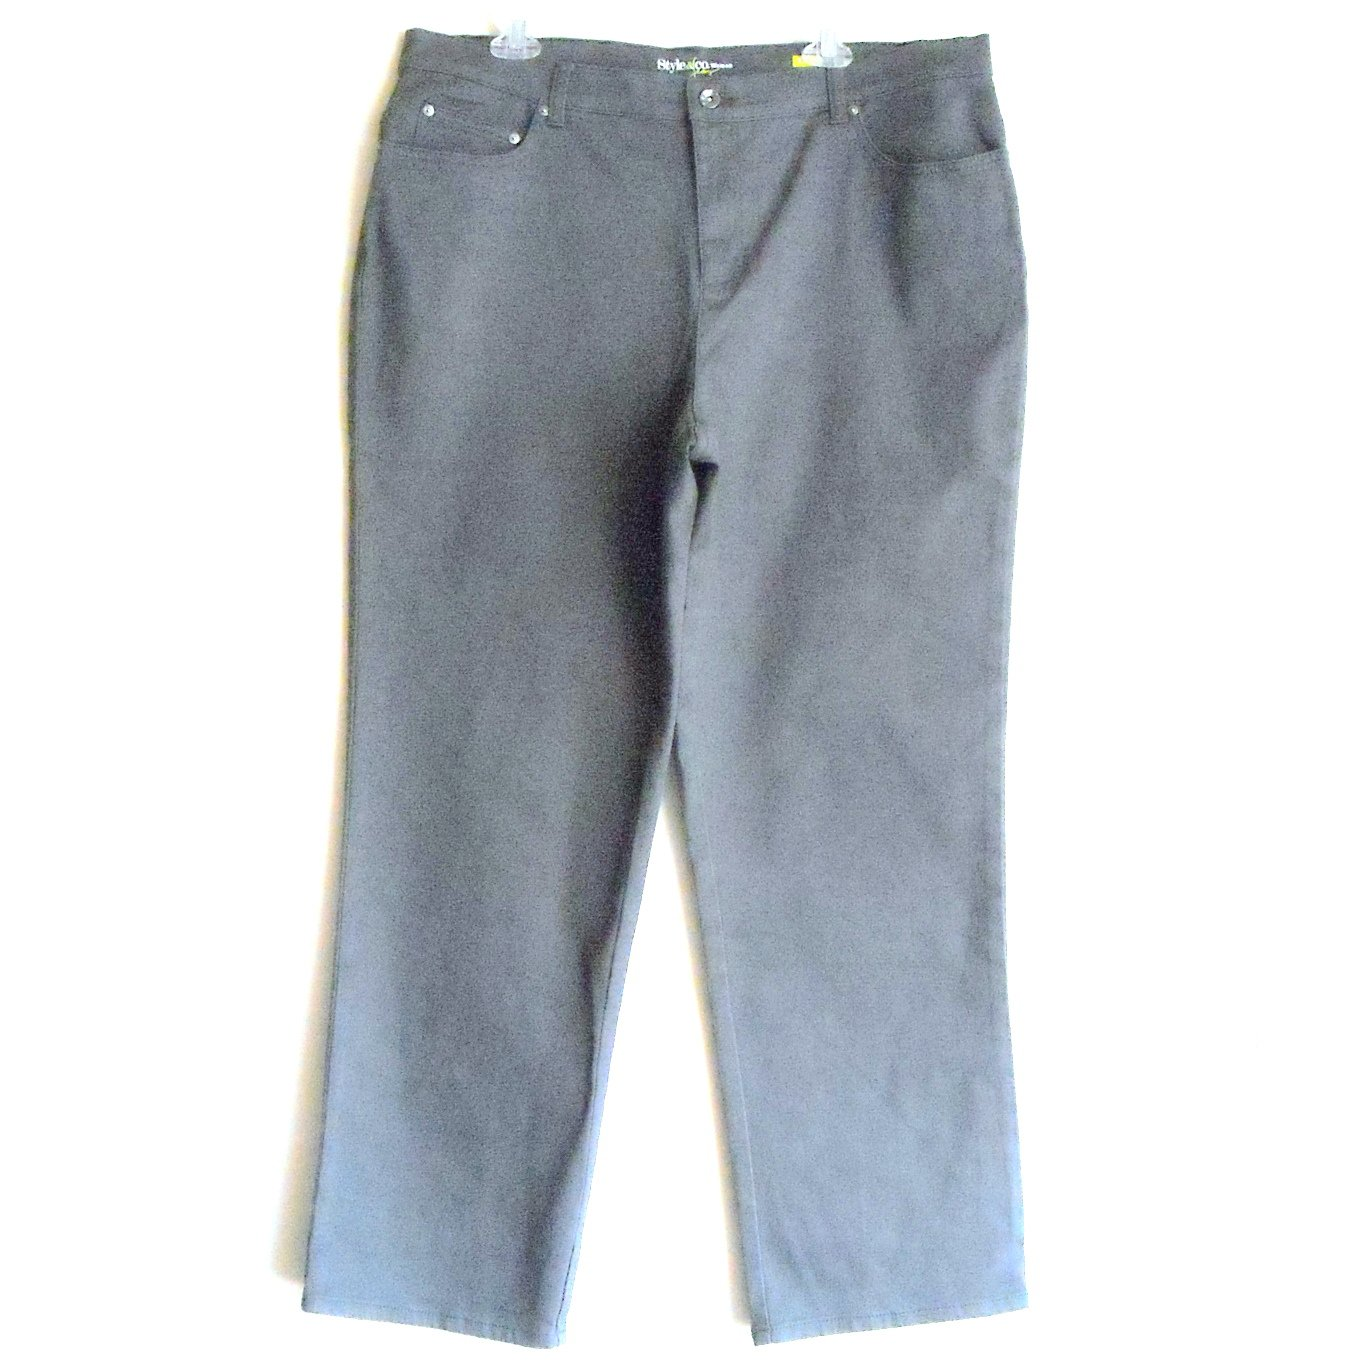 Style & Co Womens Easy Jeans Pants Size 18 W